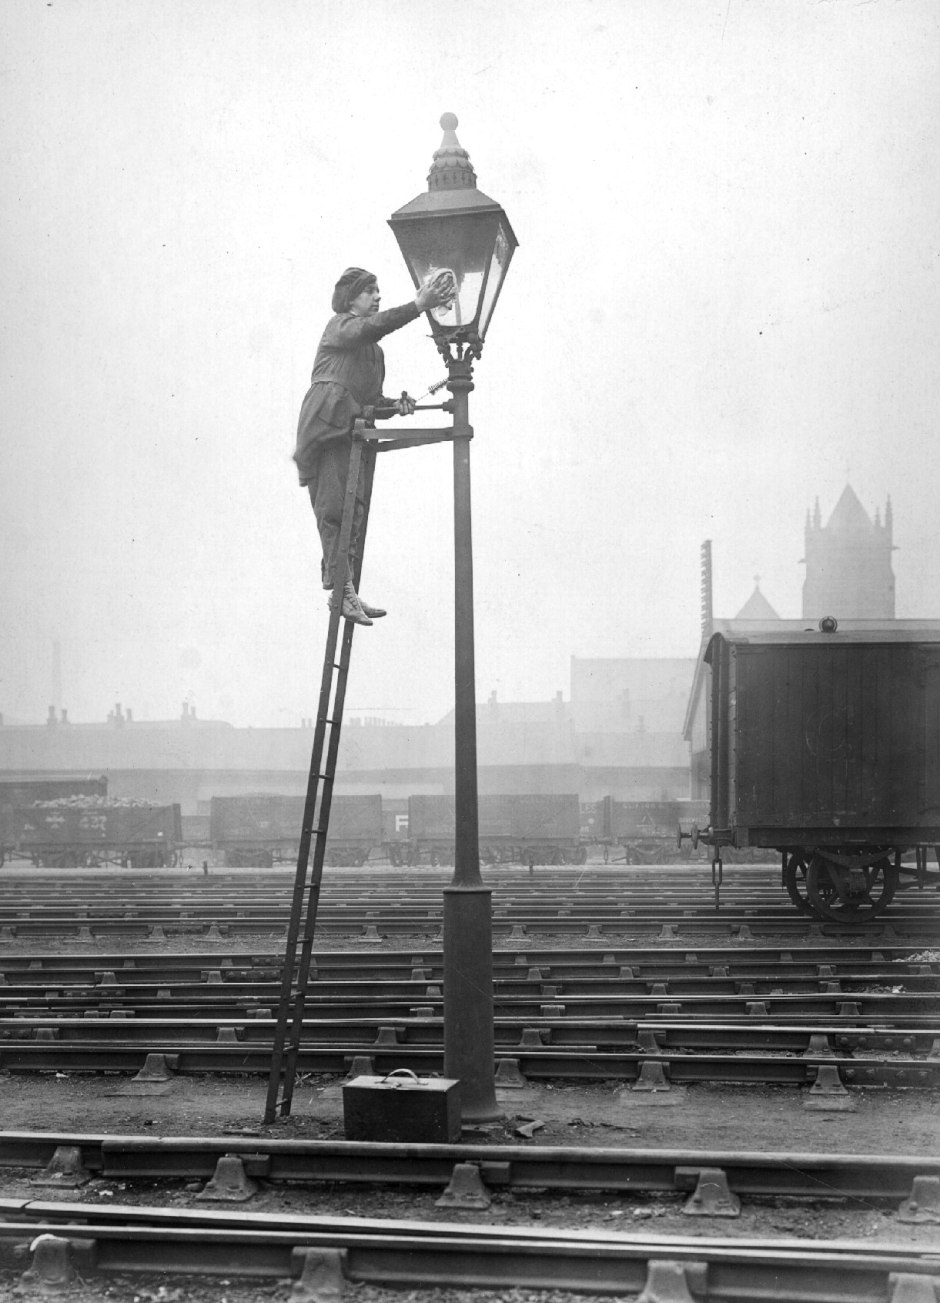 Cleaner, Lancashire and Yorkshire Railway Company, 1914-1918. Courtesy of Manchester Libraries, Information and Archives, Manchester City Council